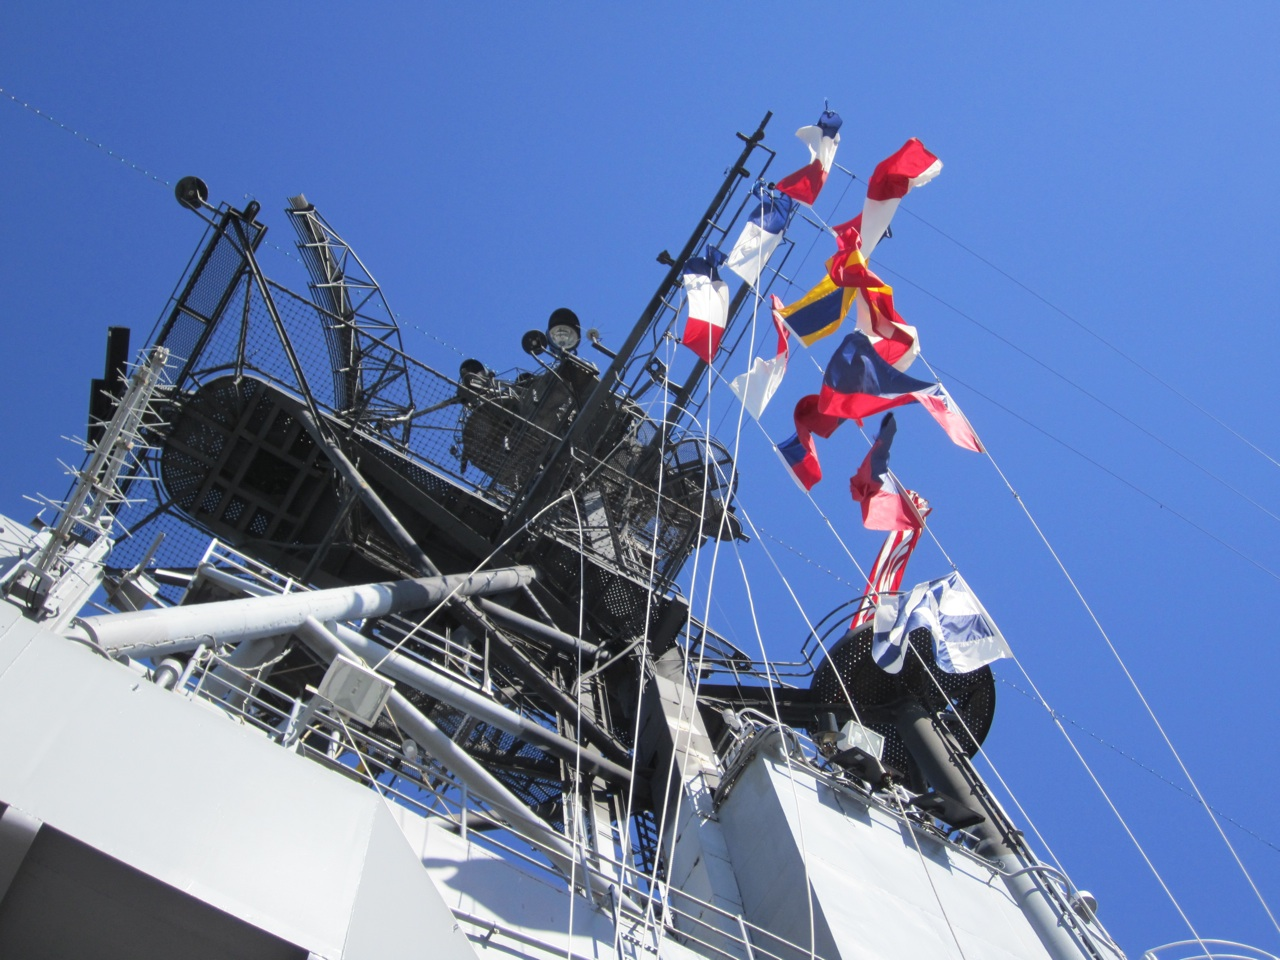 The Flags On A Beautiful Blue Sky Backdrop, Flying On The USS Midway